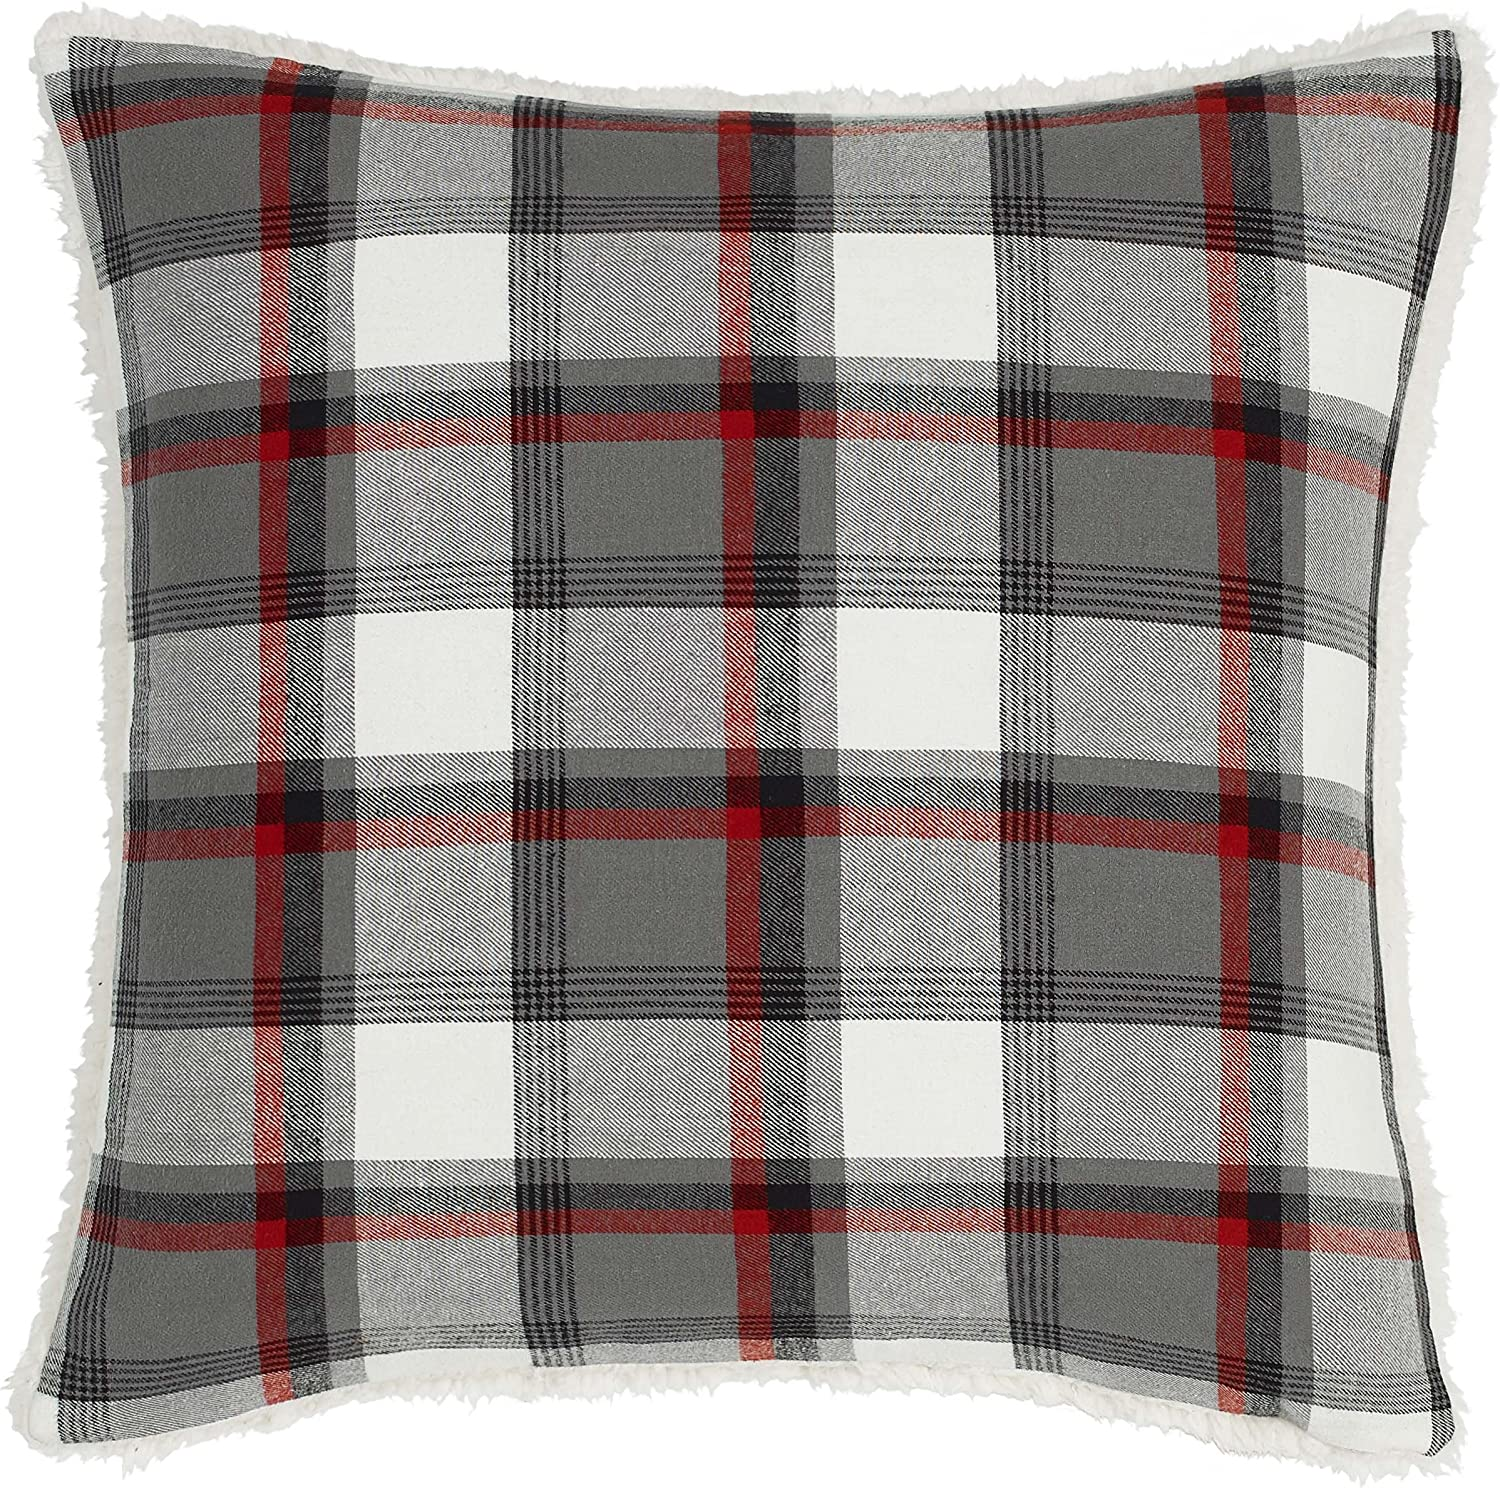 Free shipping on posting reviews Eddie Bauer Home Wallace Collection 100% Cotton Plai Classic service